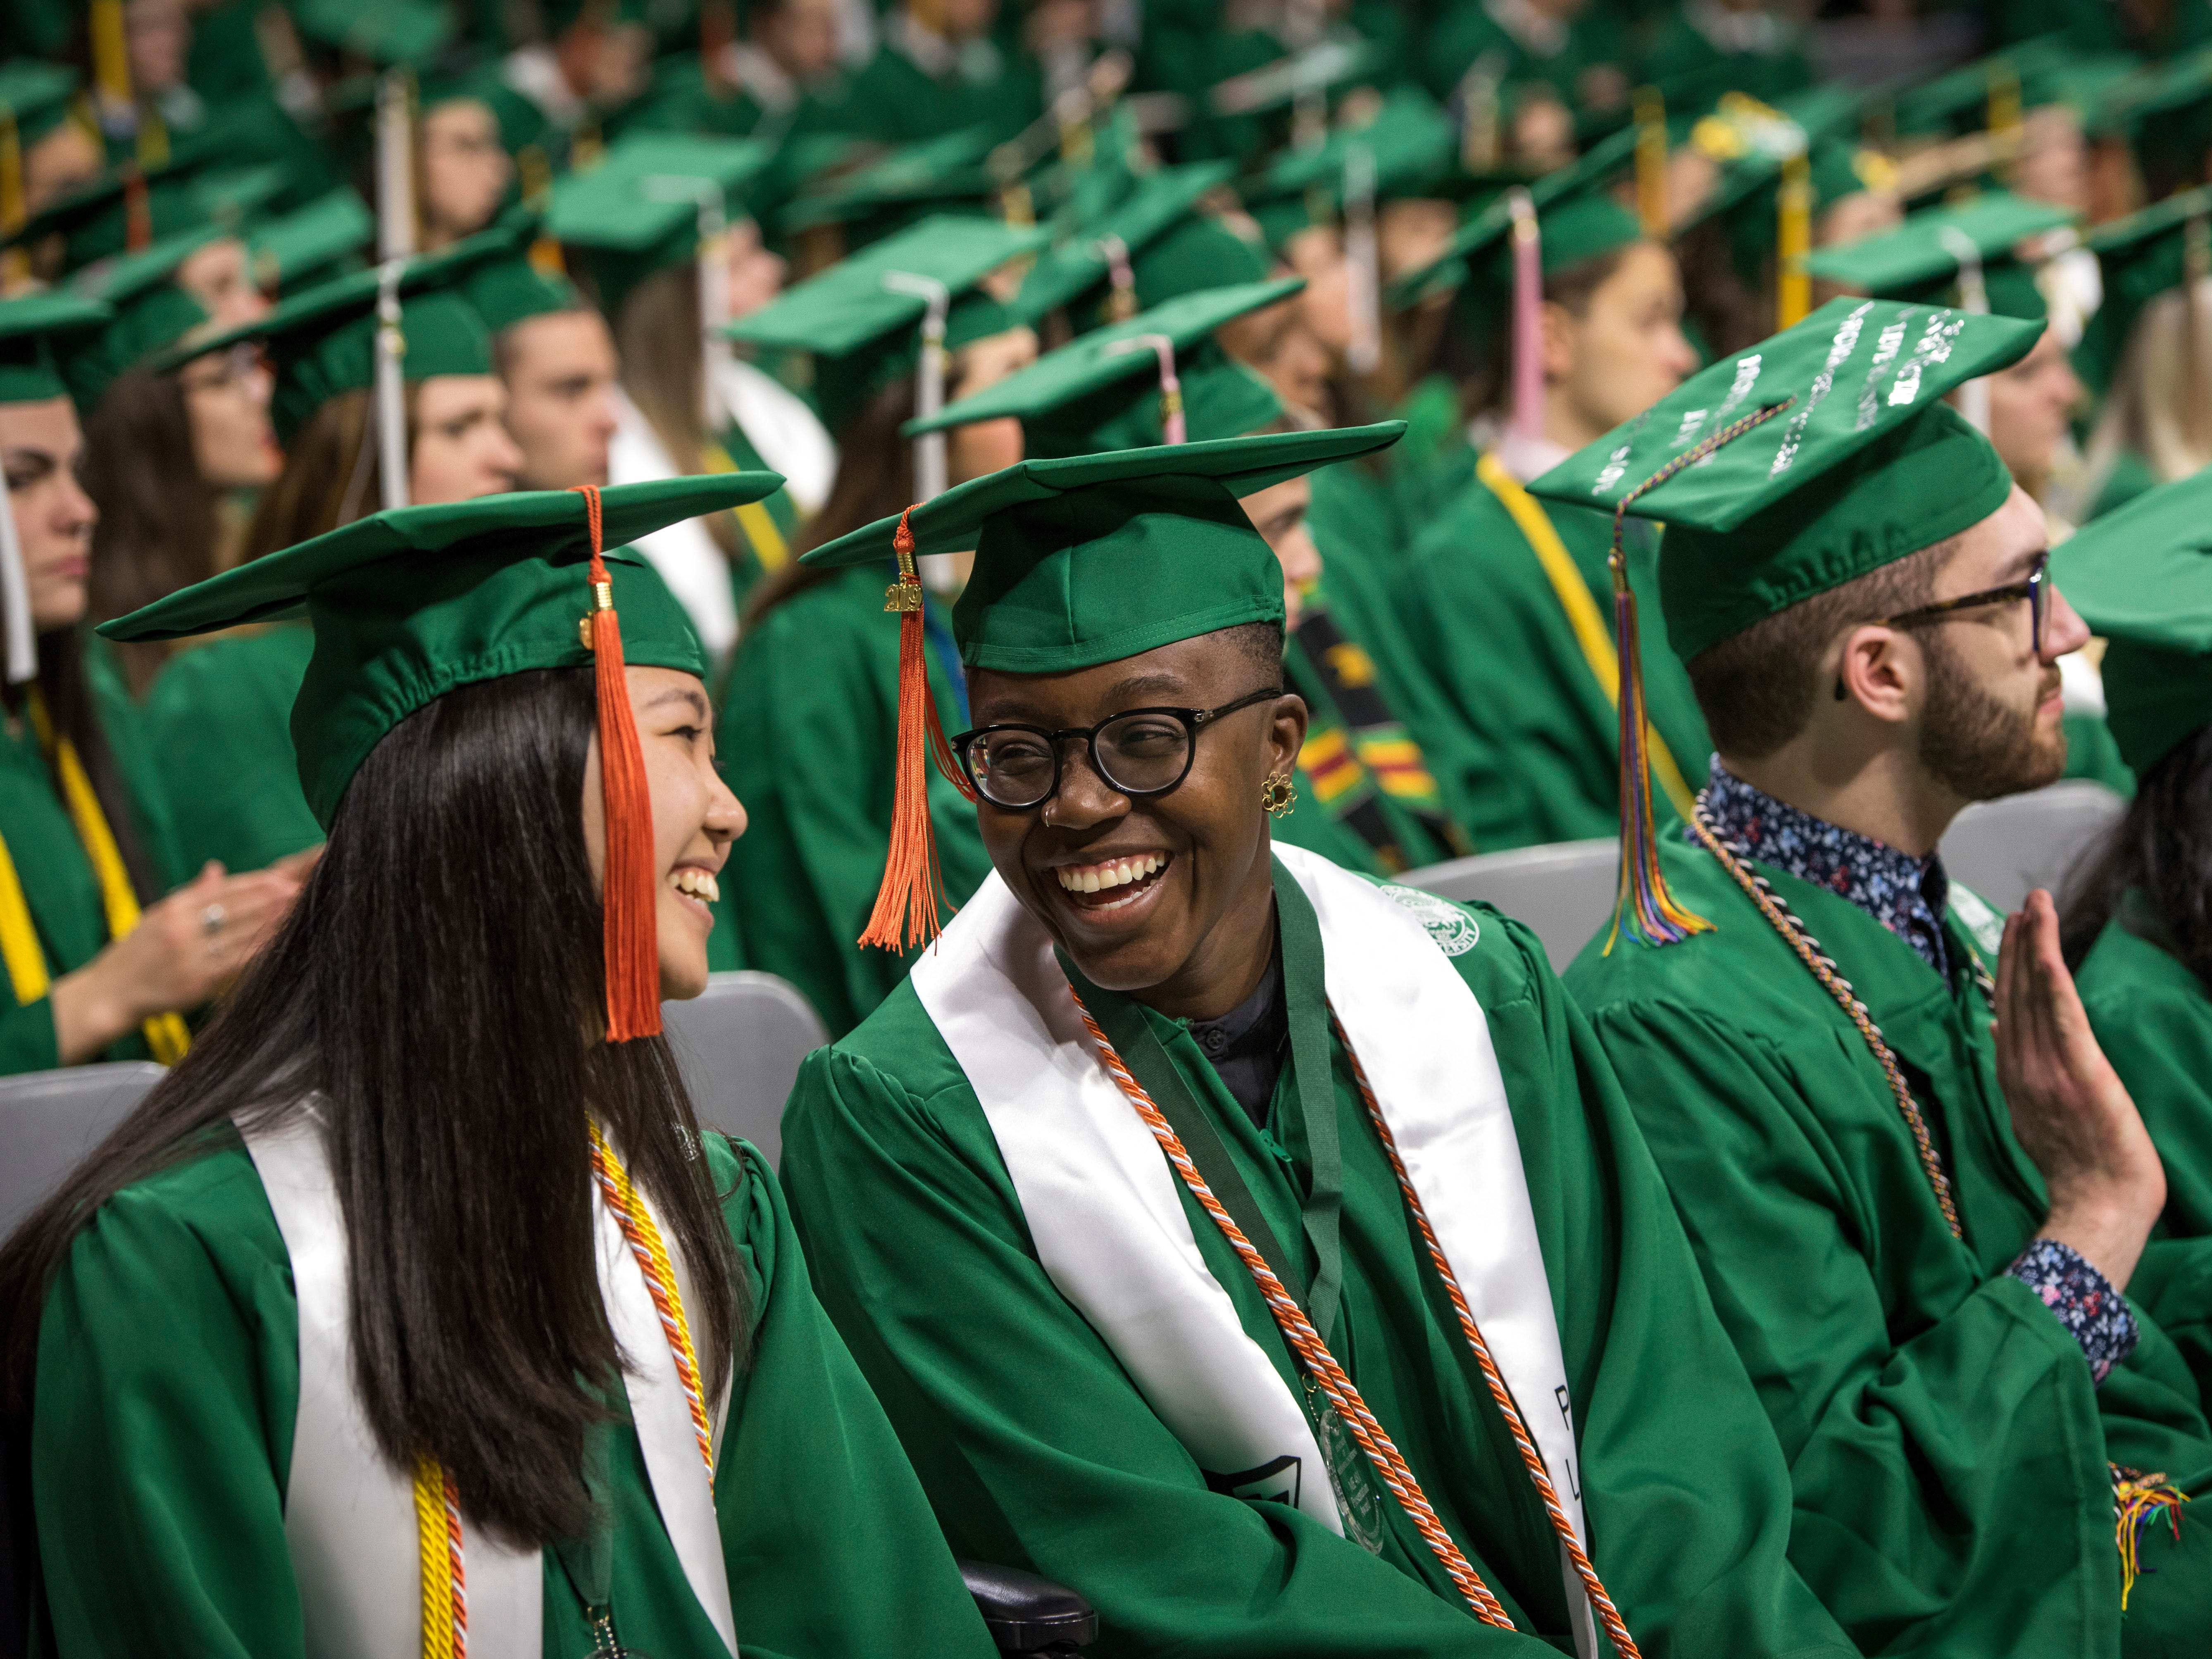 Mechanical engineering graduates Allison Nielsen, left, and Mimi Asante share a laugh during Michigan State University's Spring Commencement ceremony at Breslin Center in East Lansing on Friday, May 3, 2019.